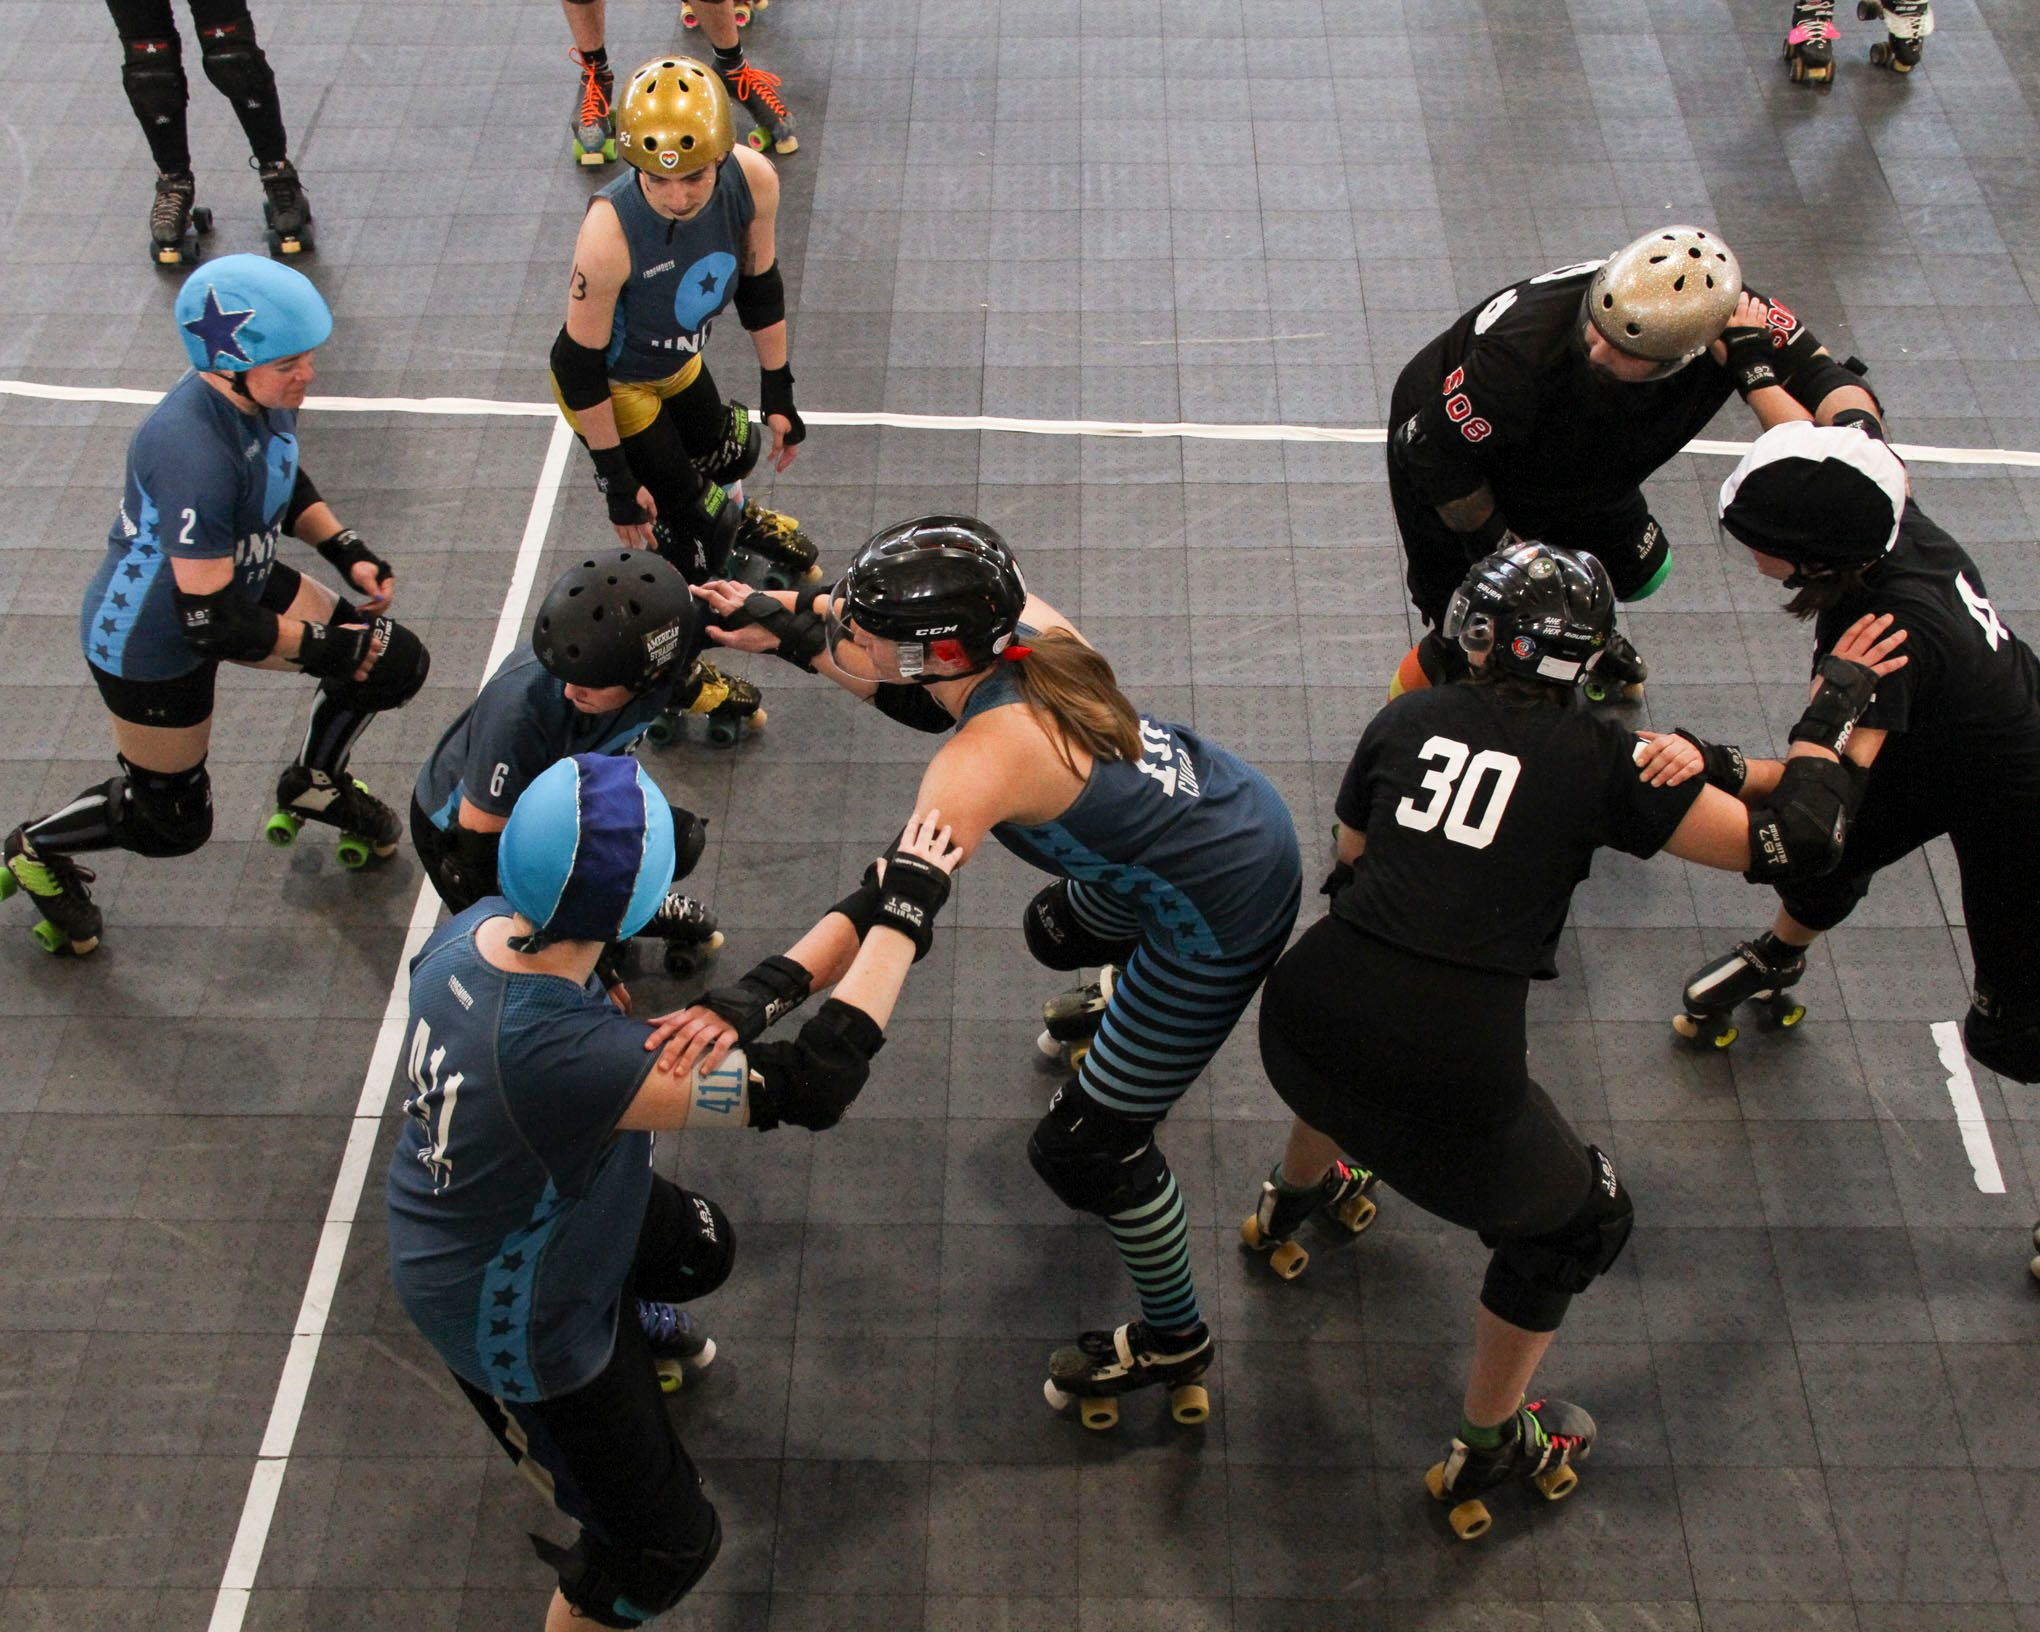 Here, Baby and Rad make a tripod with Cryptic Kablam from Green Mountain Roller Derby at PVRD.